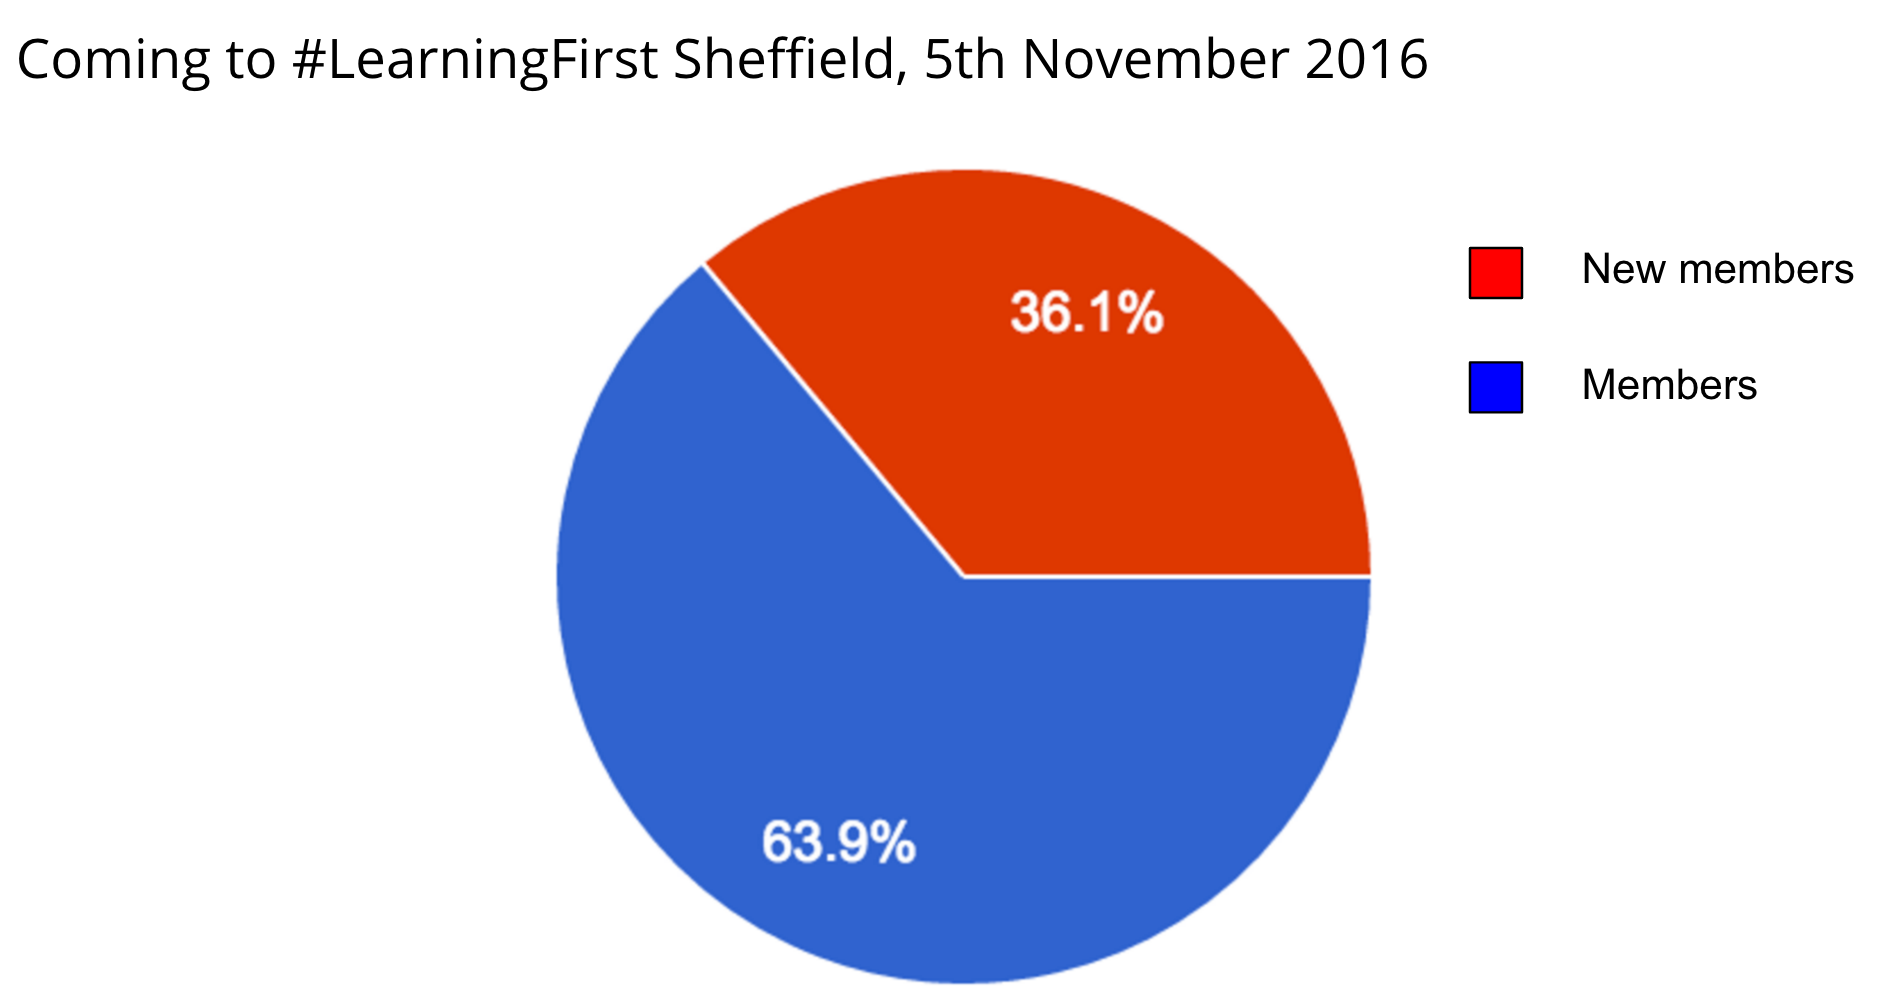 copy_of_copy_of_sheffield_5th_nov_-_google_drawings